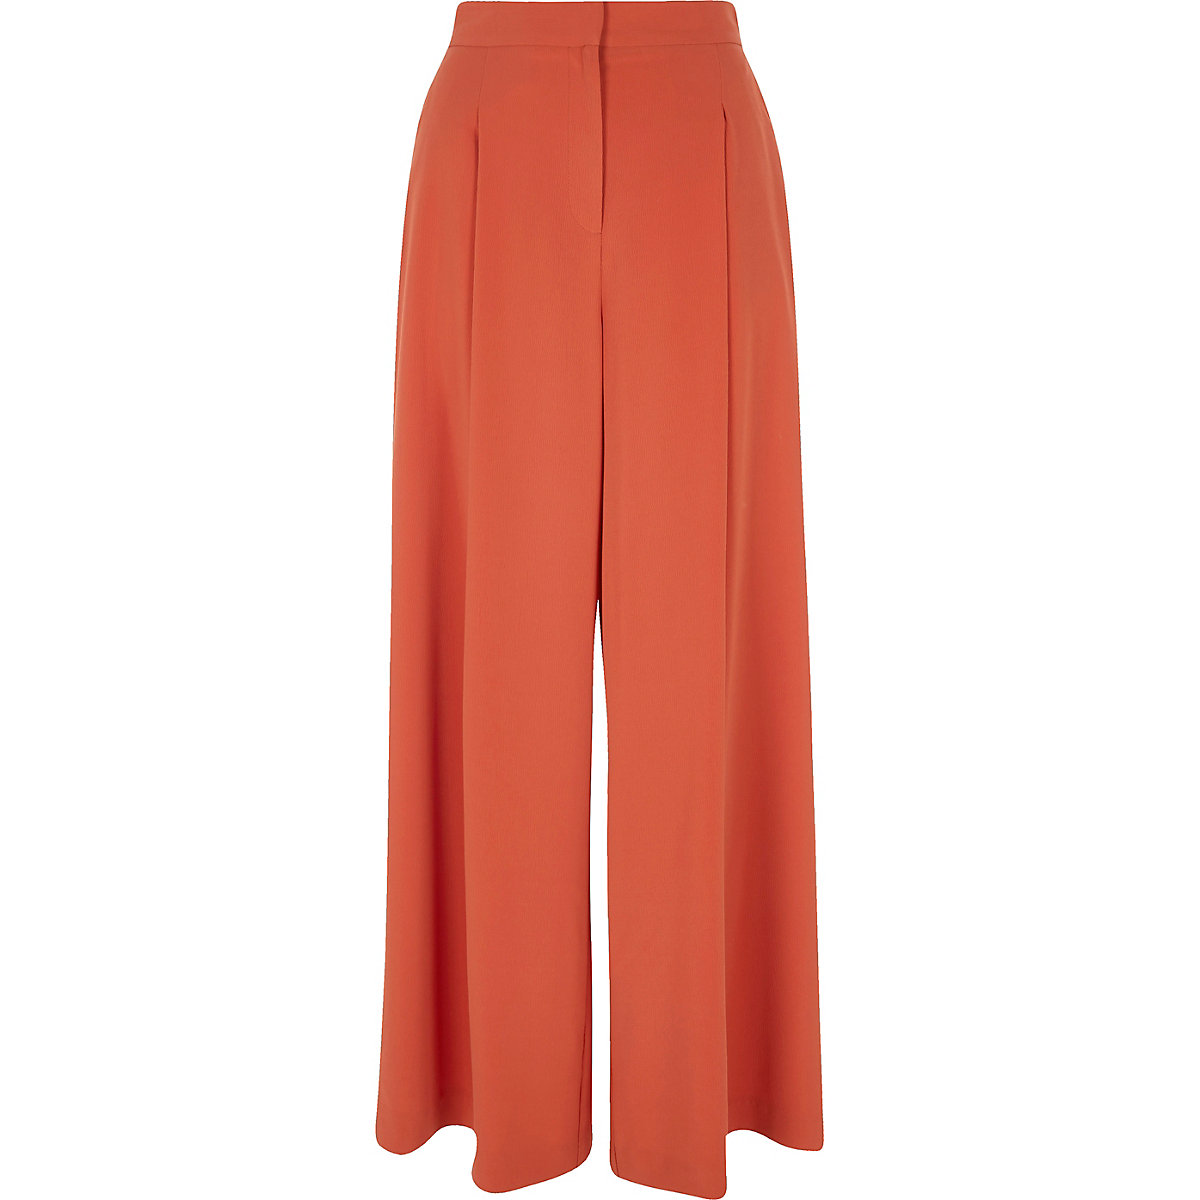 693492bd03 Rust orange wide leg trousers - Wide Leg Trousers - Trousers - women